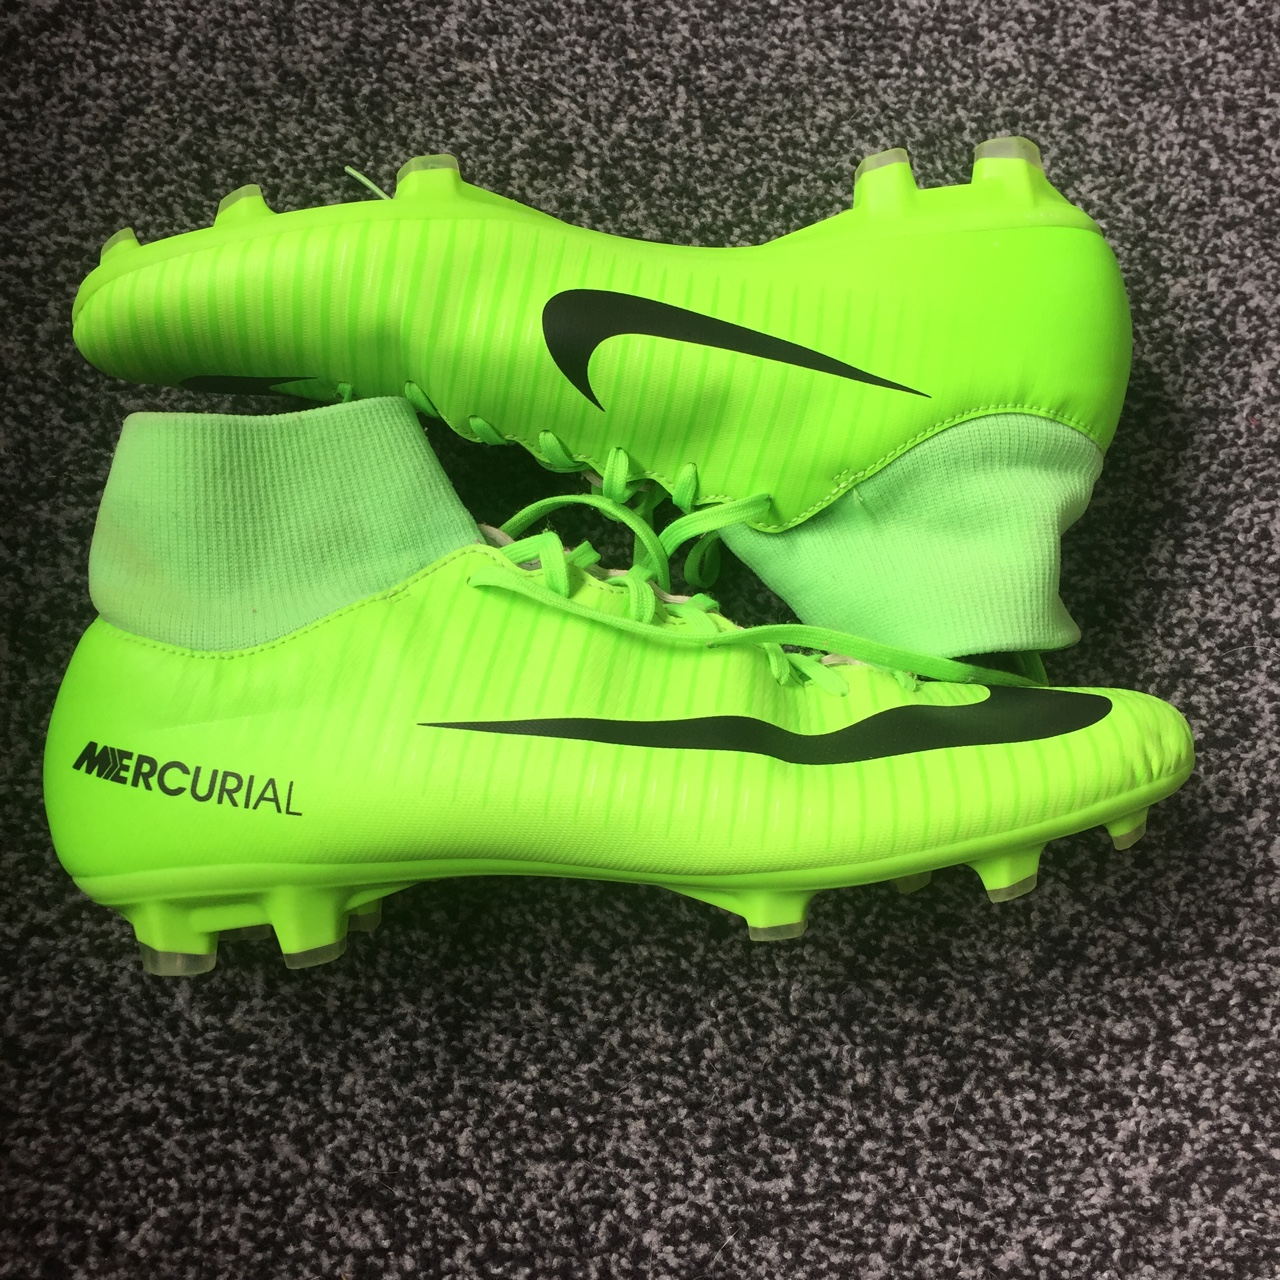 Puntuación datos paridad  Green/Black Nike mercurial Football boots/sock... - Depop